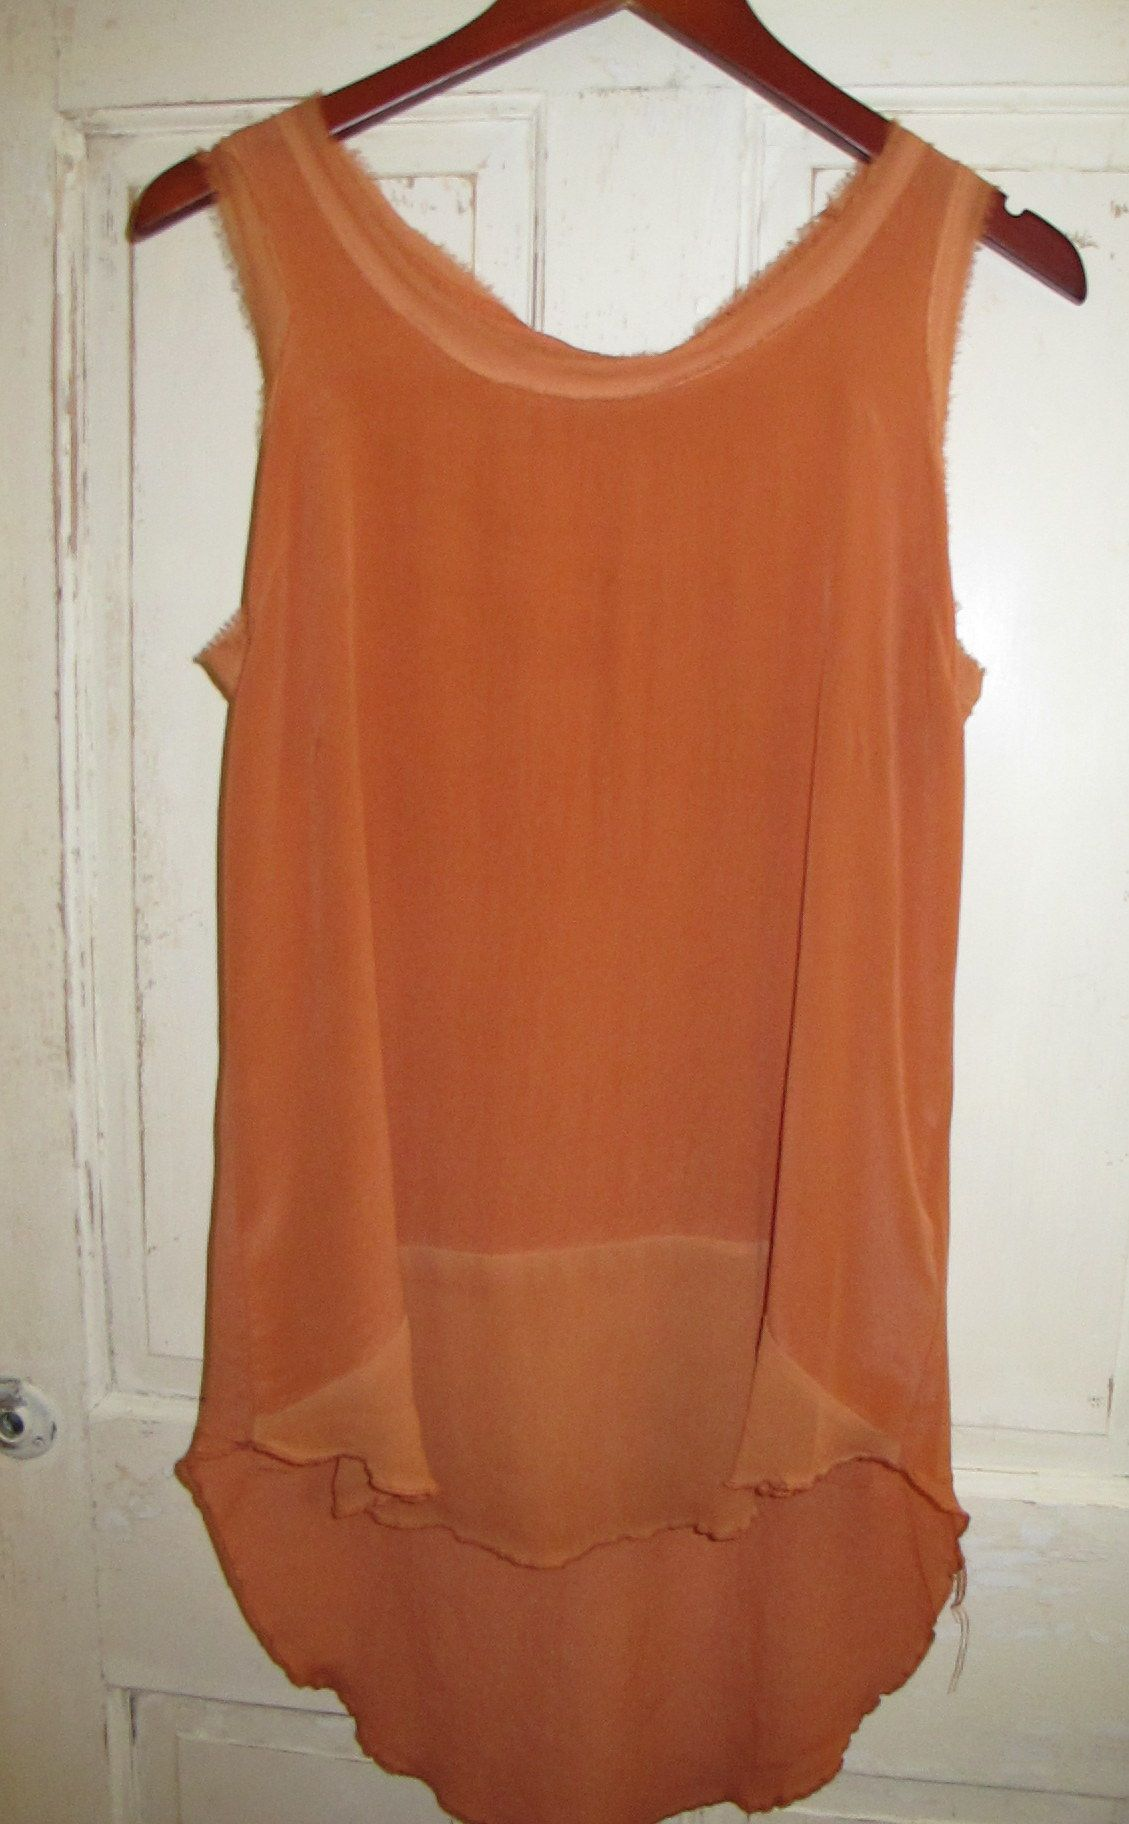 Black Sheep Oriana Blouse in Tangerine